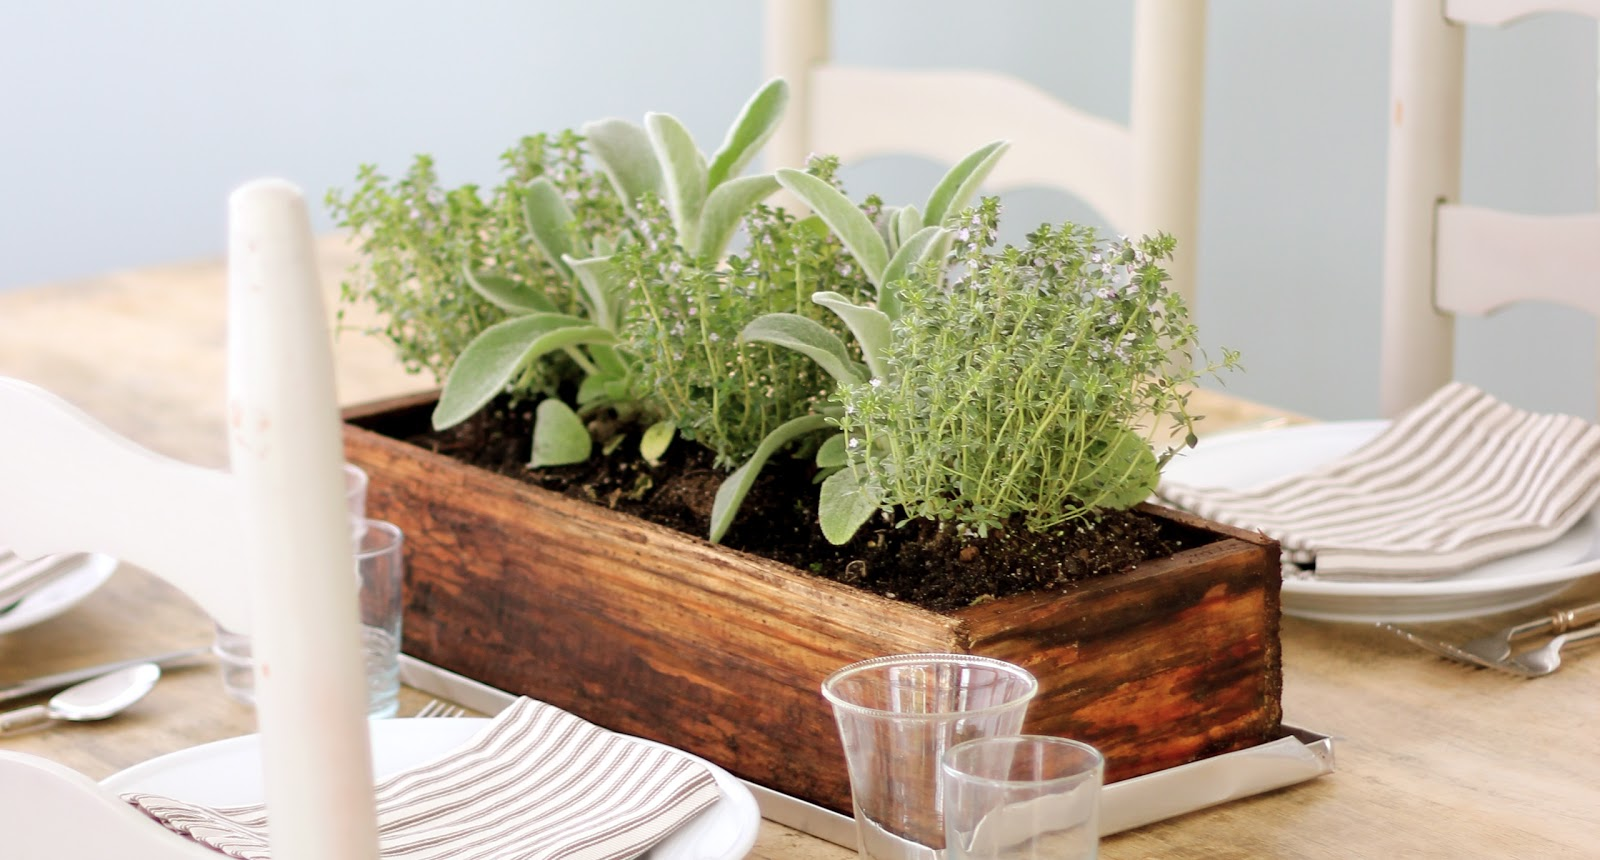 Jenny steffens hobick easy summer centerpiece planted herbs